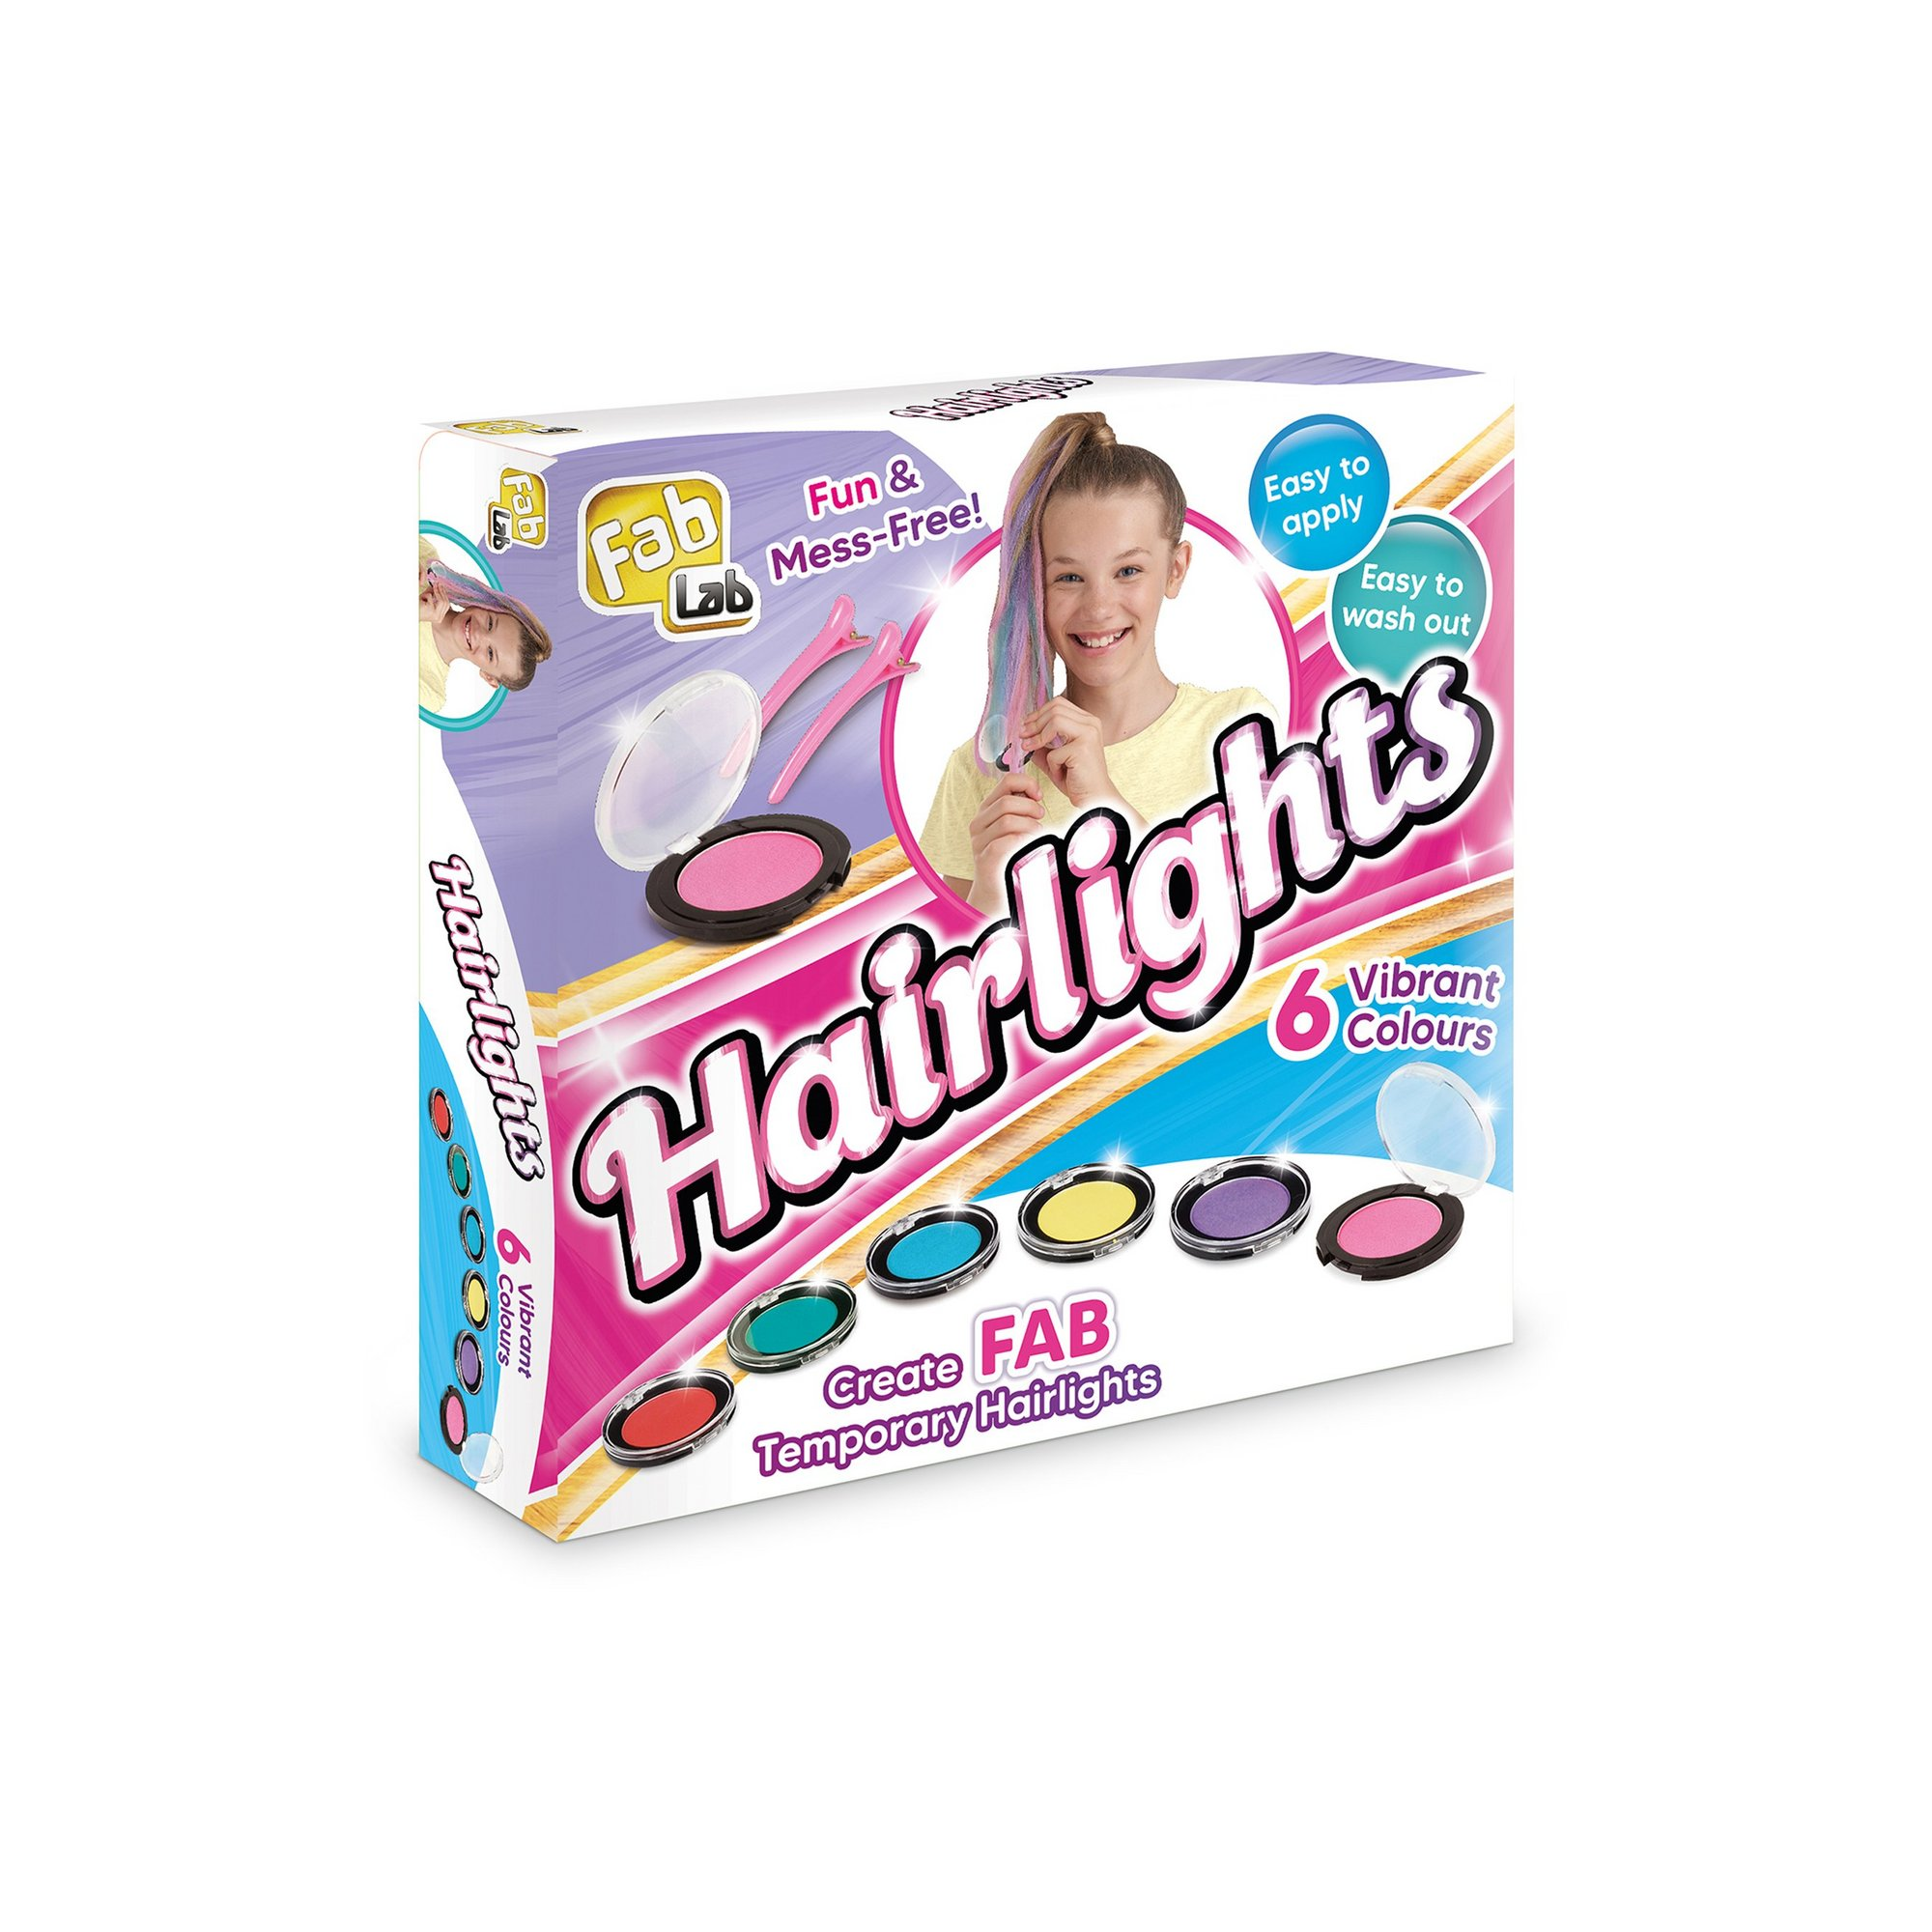 Image of Fab Lab Hairlights